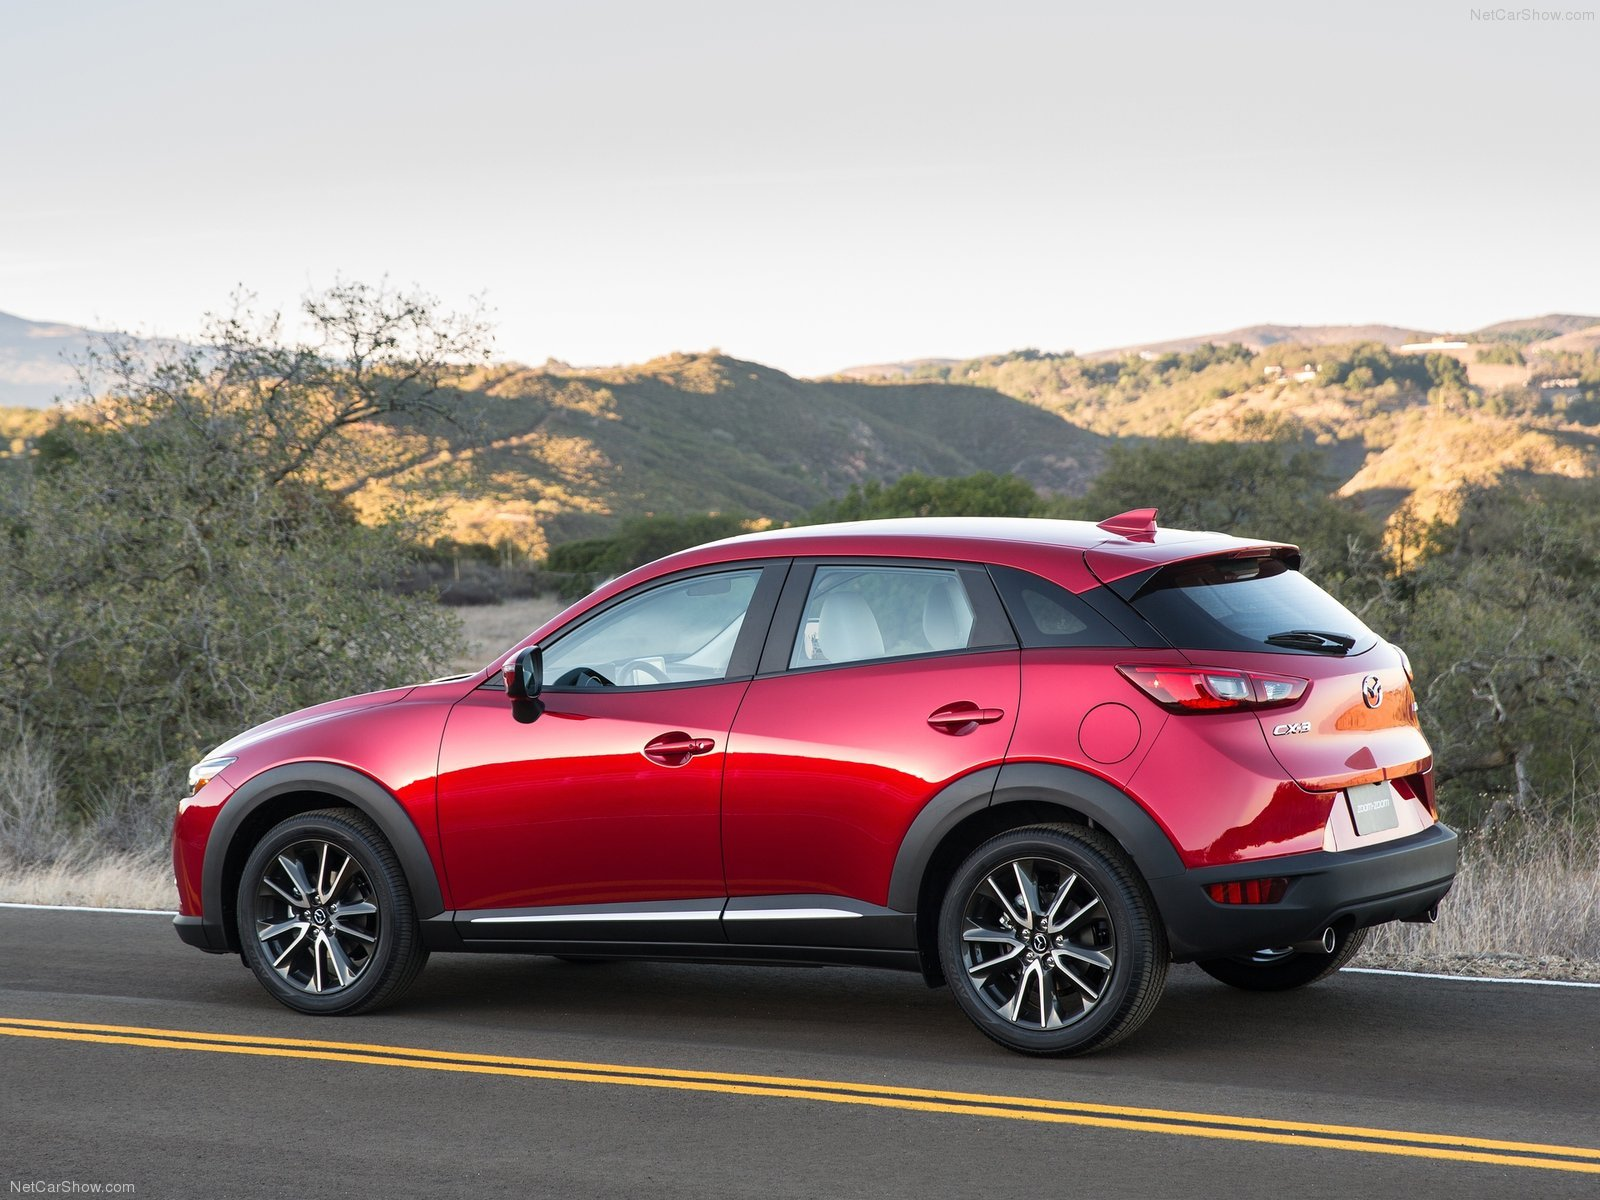 2015 Awd Cx 3 Mazda Cars Suv Wallpaper 1600x1200